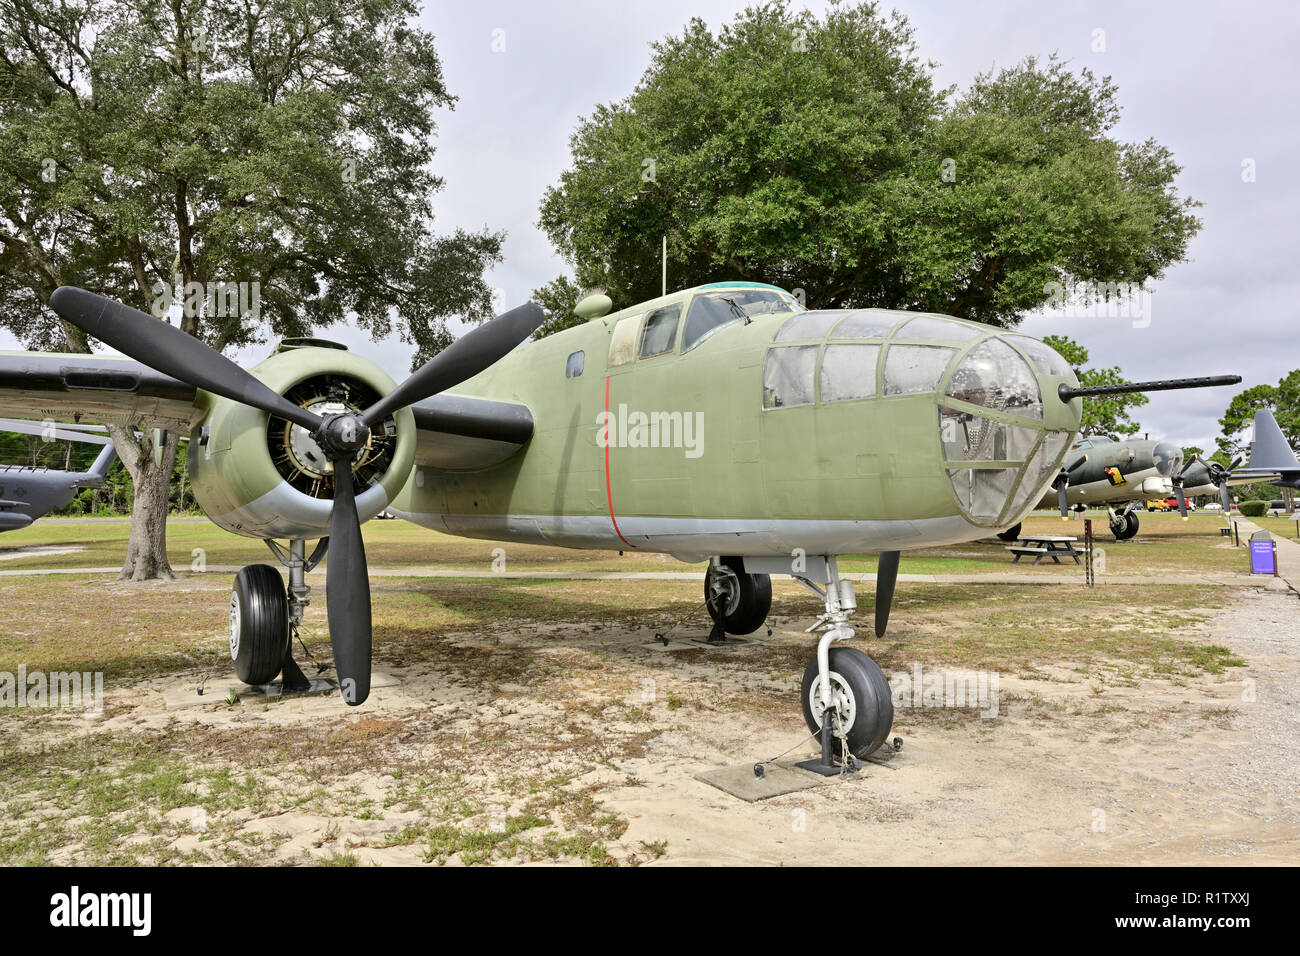 B-24 Mitchell a WWII or World War II medium bomber on static display at the outdoor museum, Eglin AFB, Fort Walton Beach Florida, USA. - Stock Image